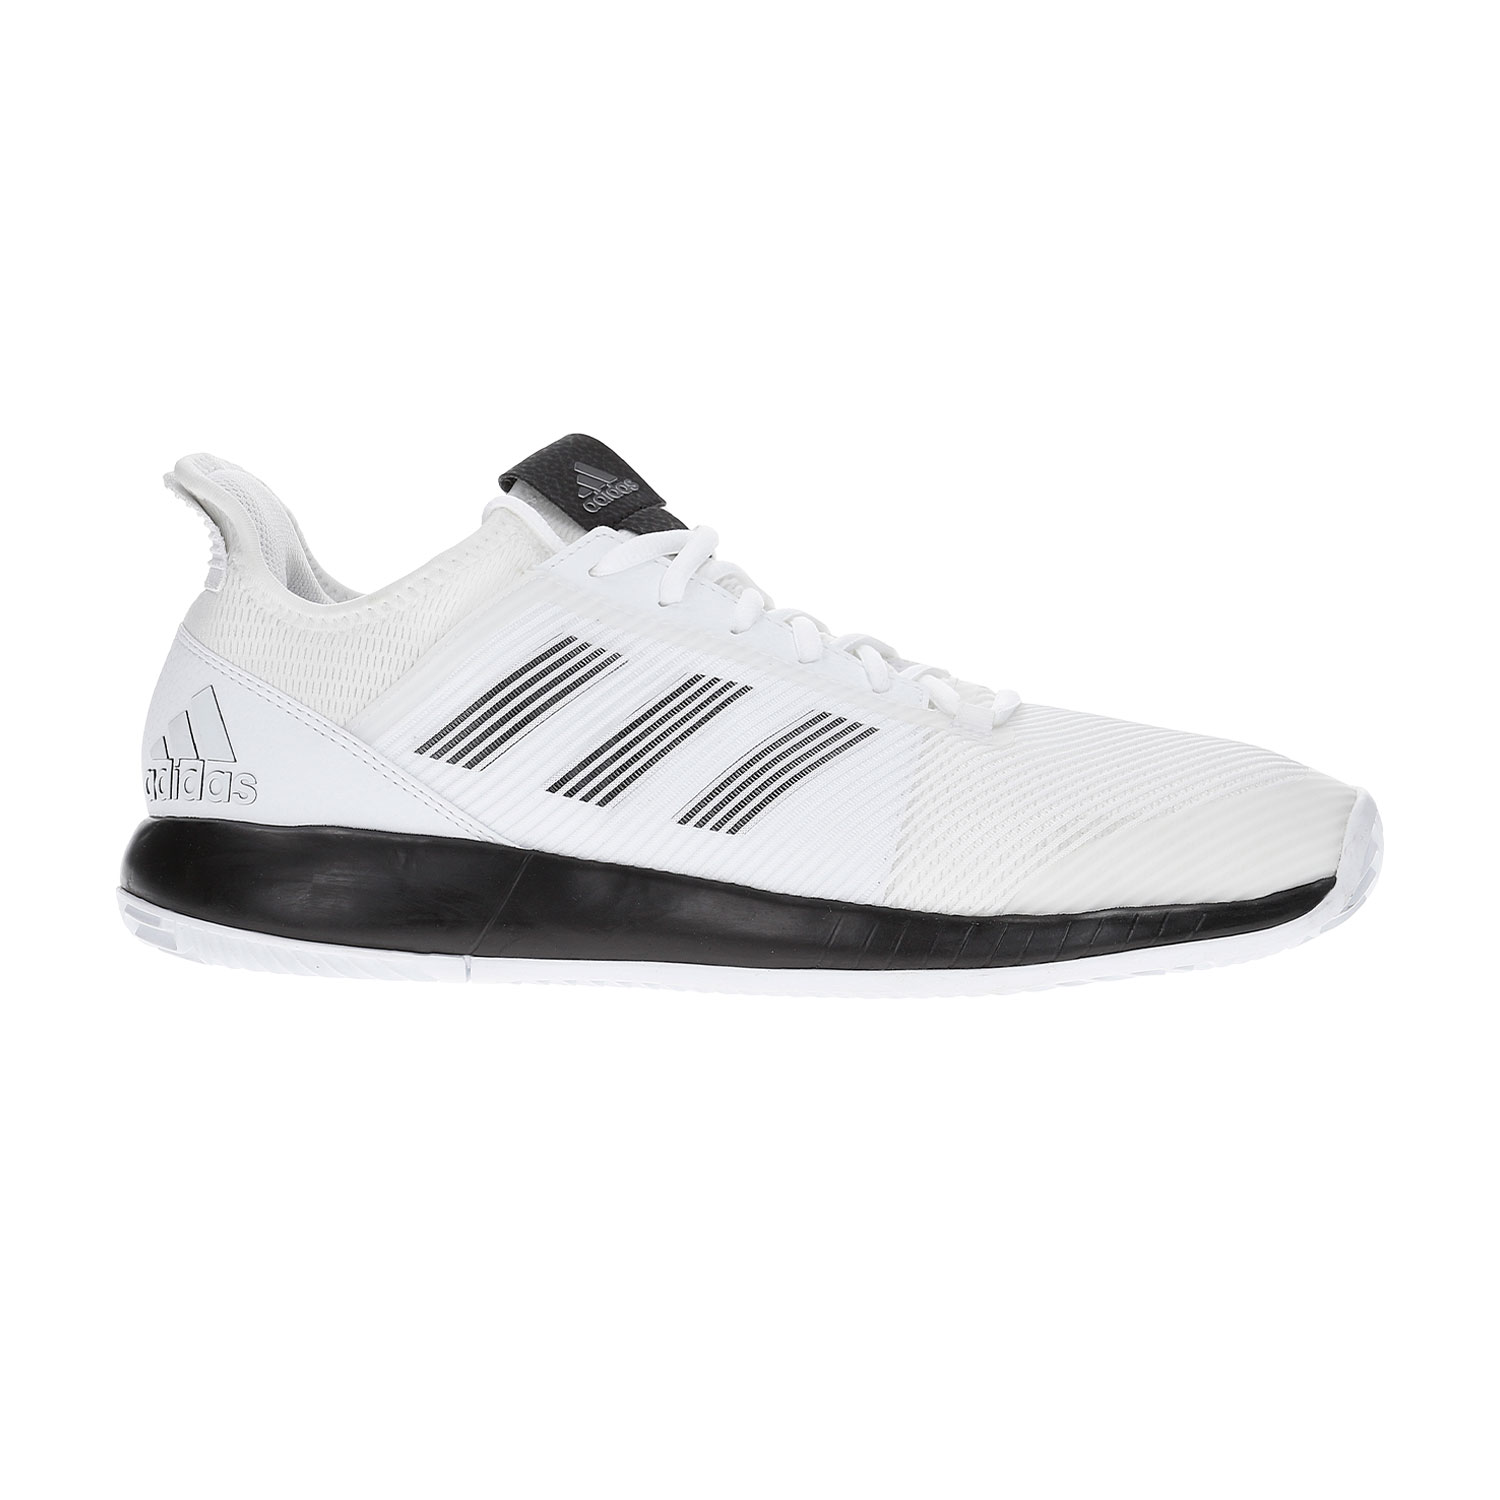 Adidas Defiant Bounce 2 Clay Men's Tennis Shoes White